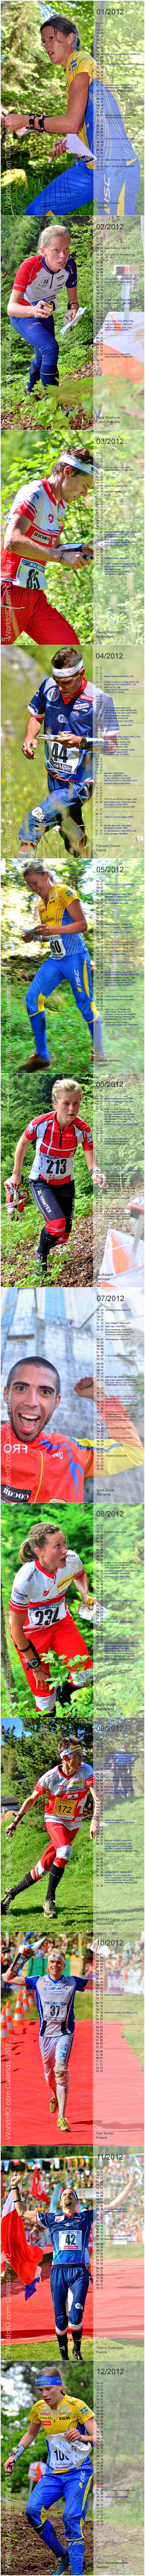 wall_calender2012_vertical